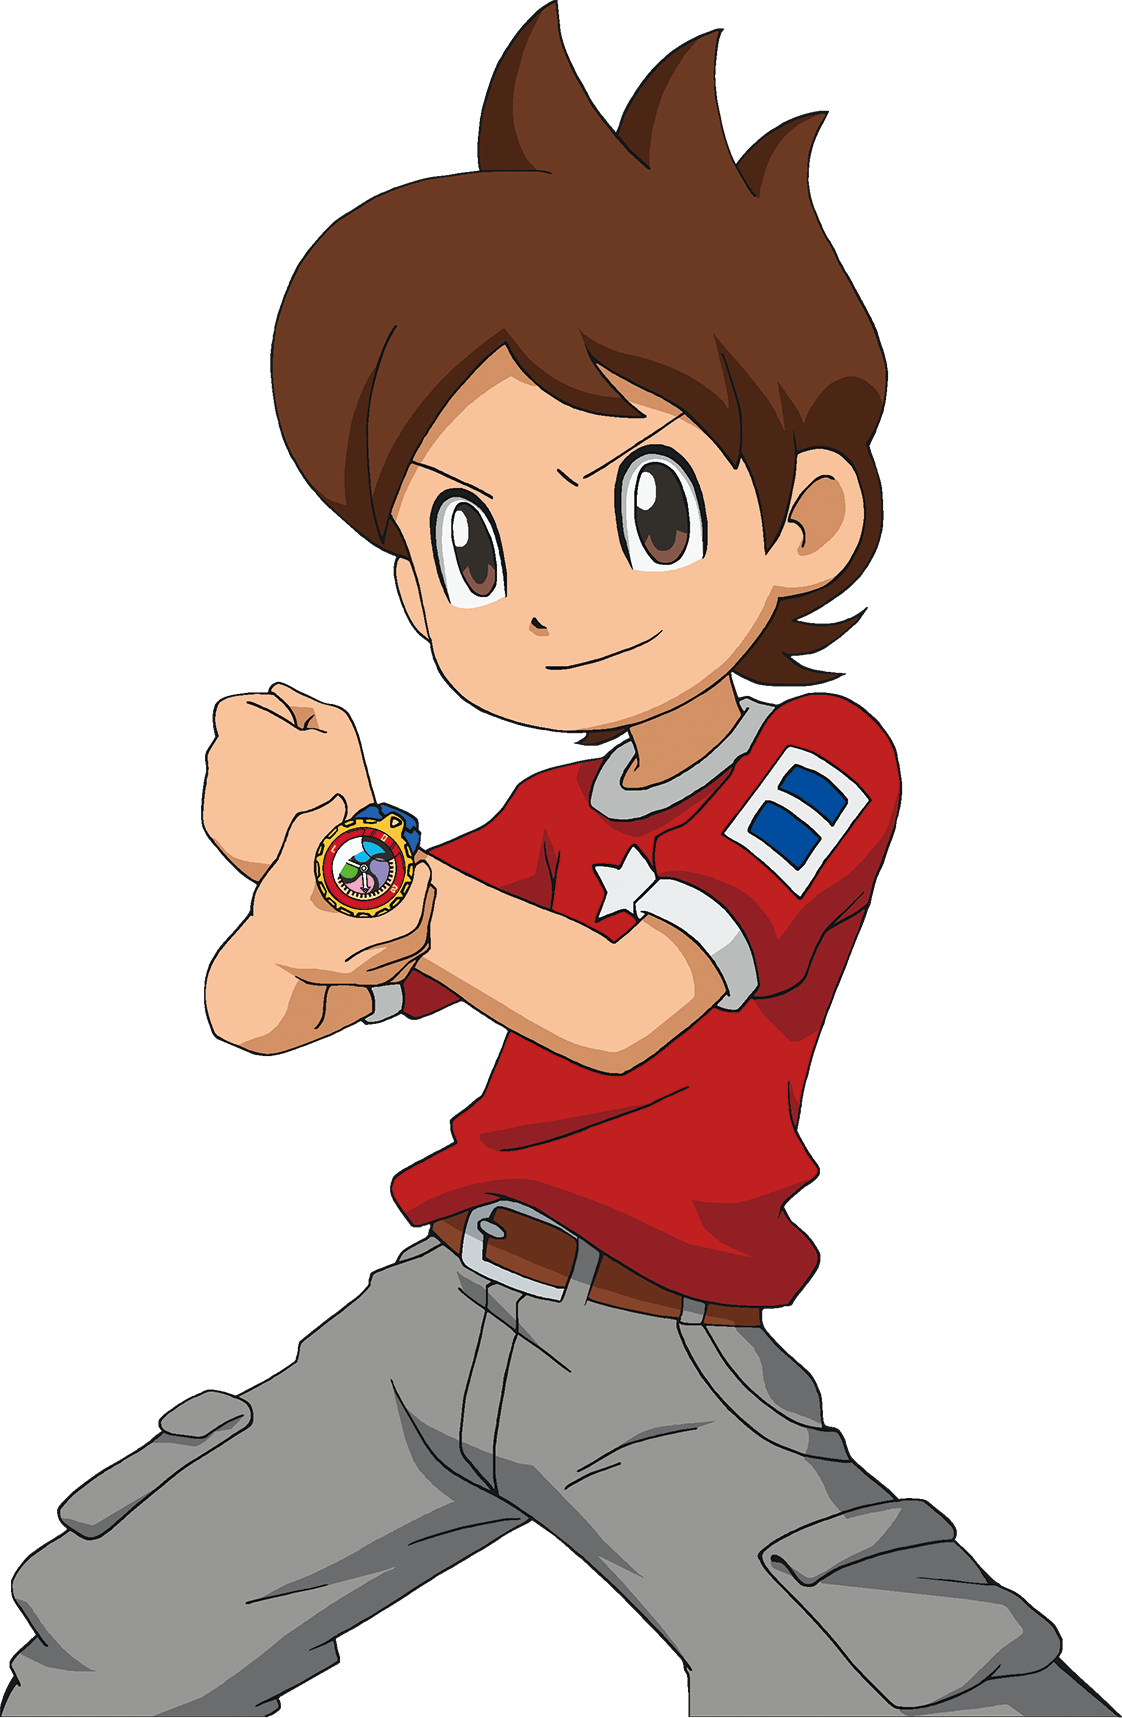 Yo kai watch png. Psychic specters for the